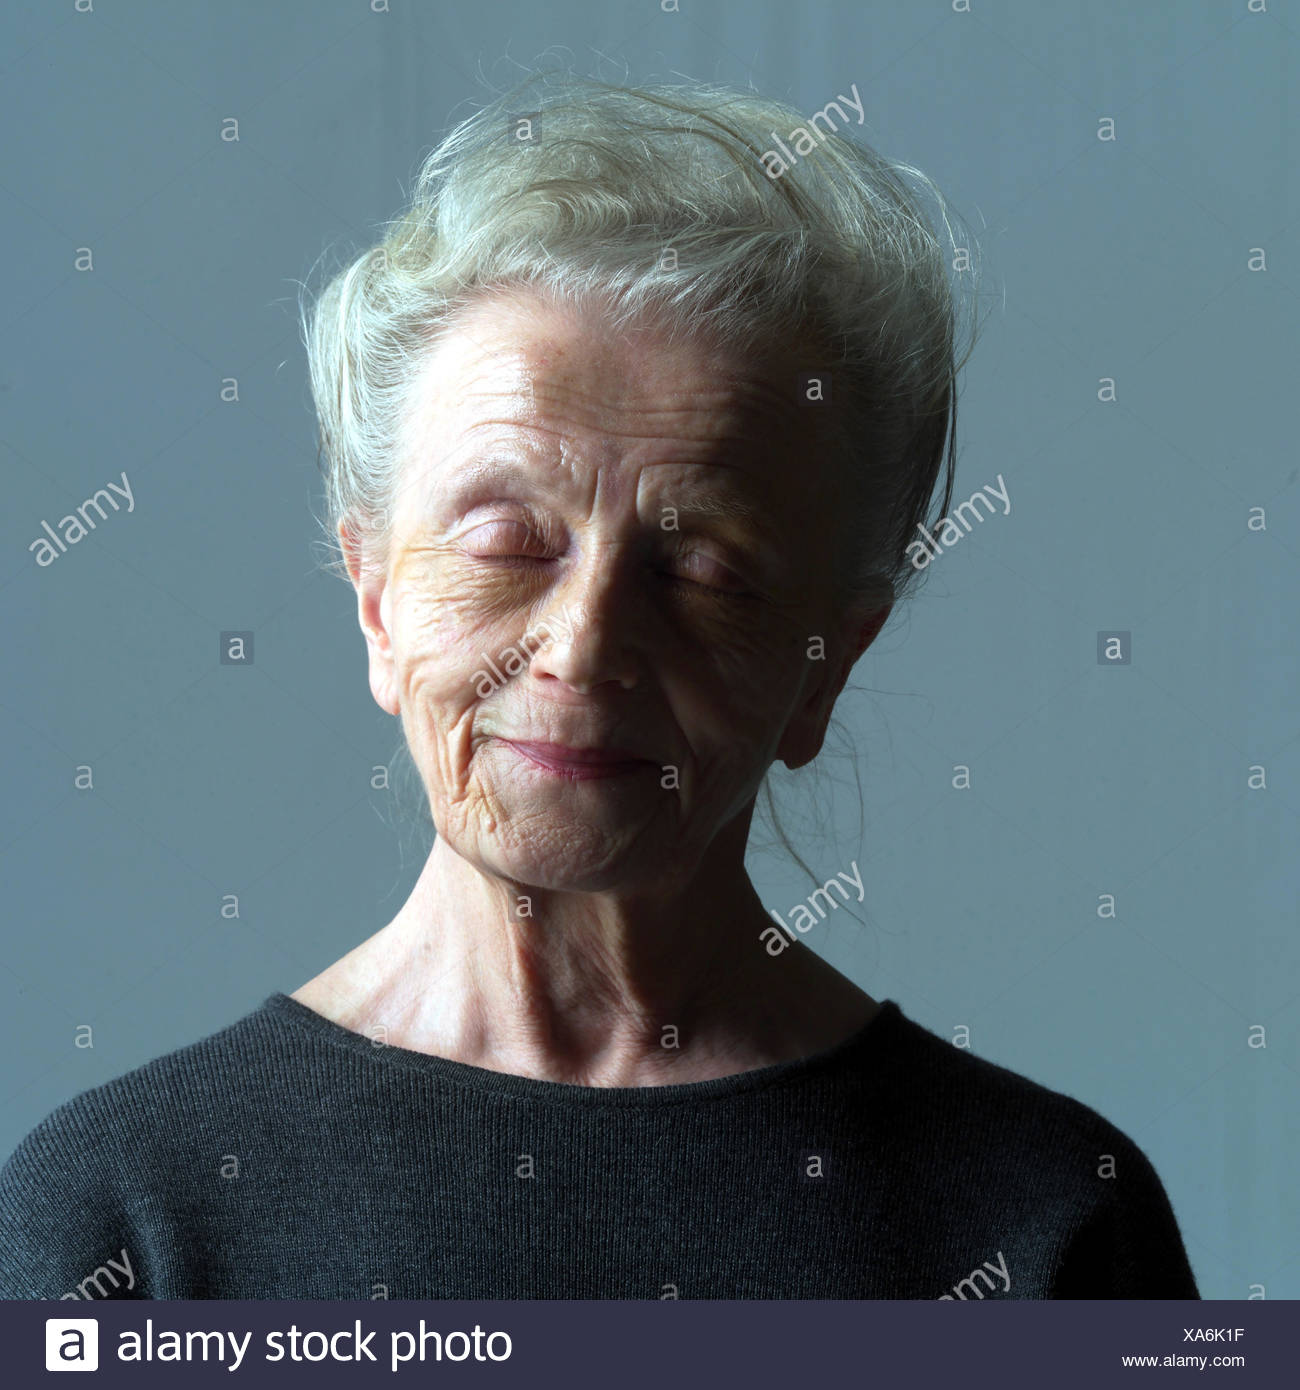 Senior, smile, portrait, model released very closely, studio, pensioner, woman, old, old age, expression, good-natured, good nature, friendly, contently, satisfaction, eyes closed, natural, naturalness - Stock Image